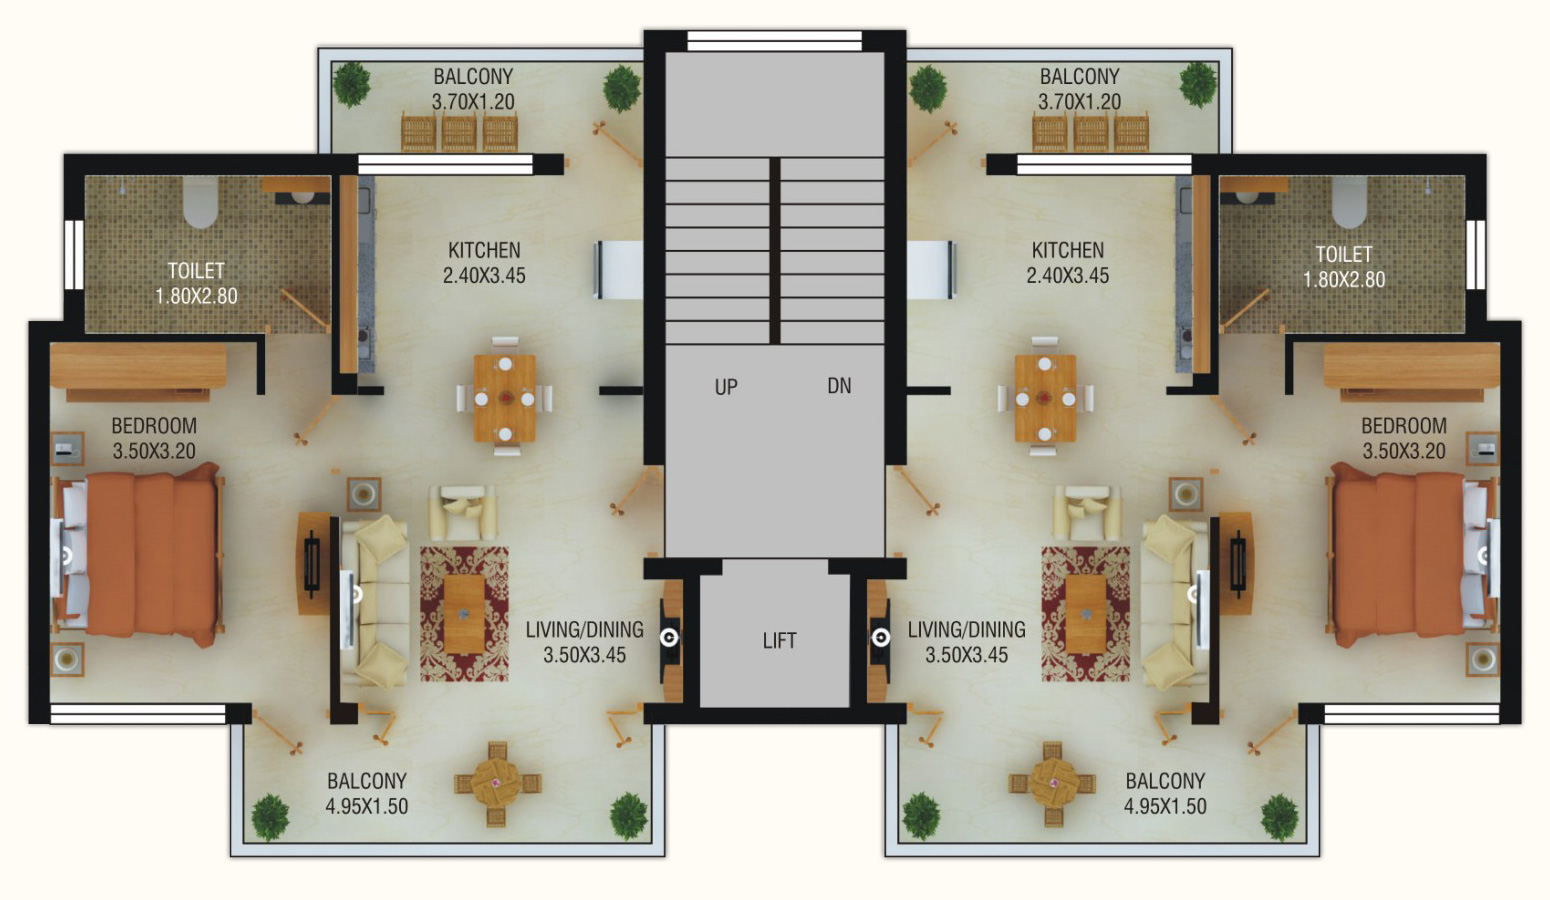 Beach apartments goa floorplans world class apartments for Residence design plan